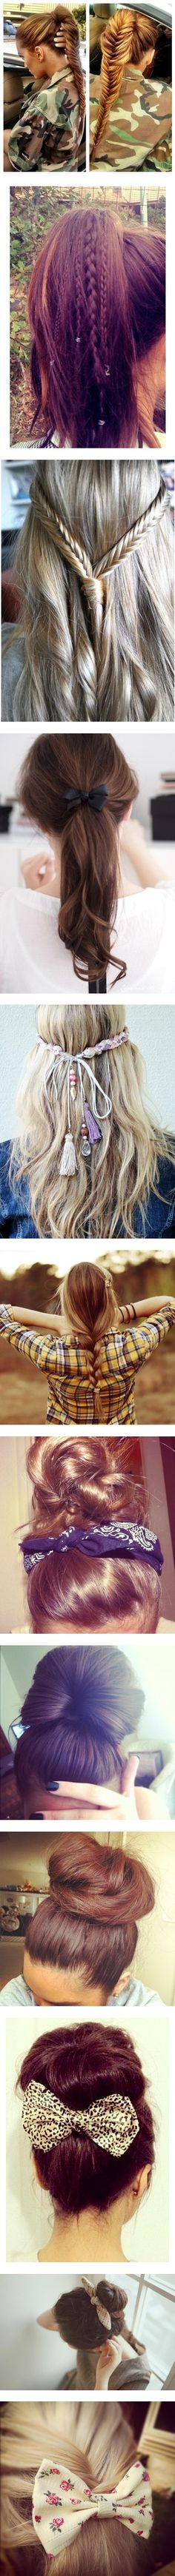 """Hair♥"" by breoniaelkstone ❤ liked on Polyvore"